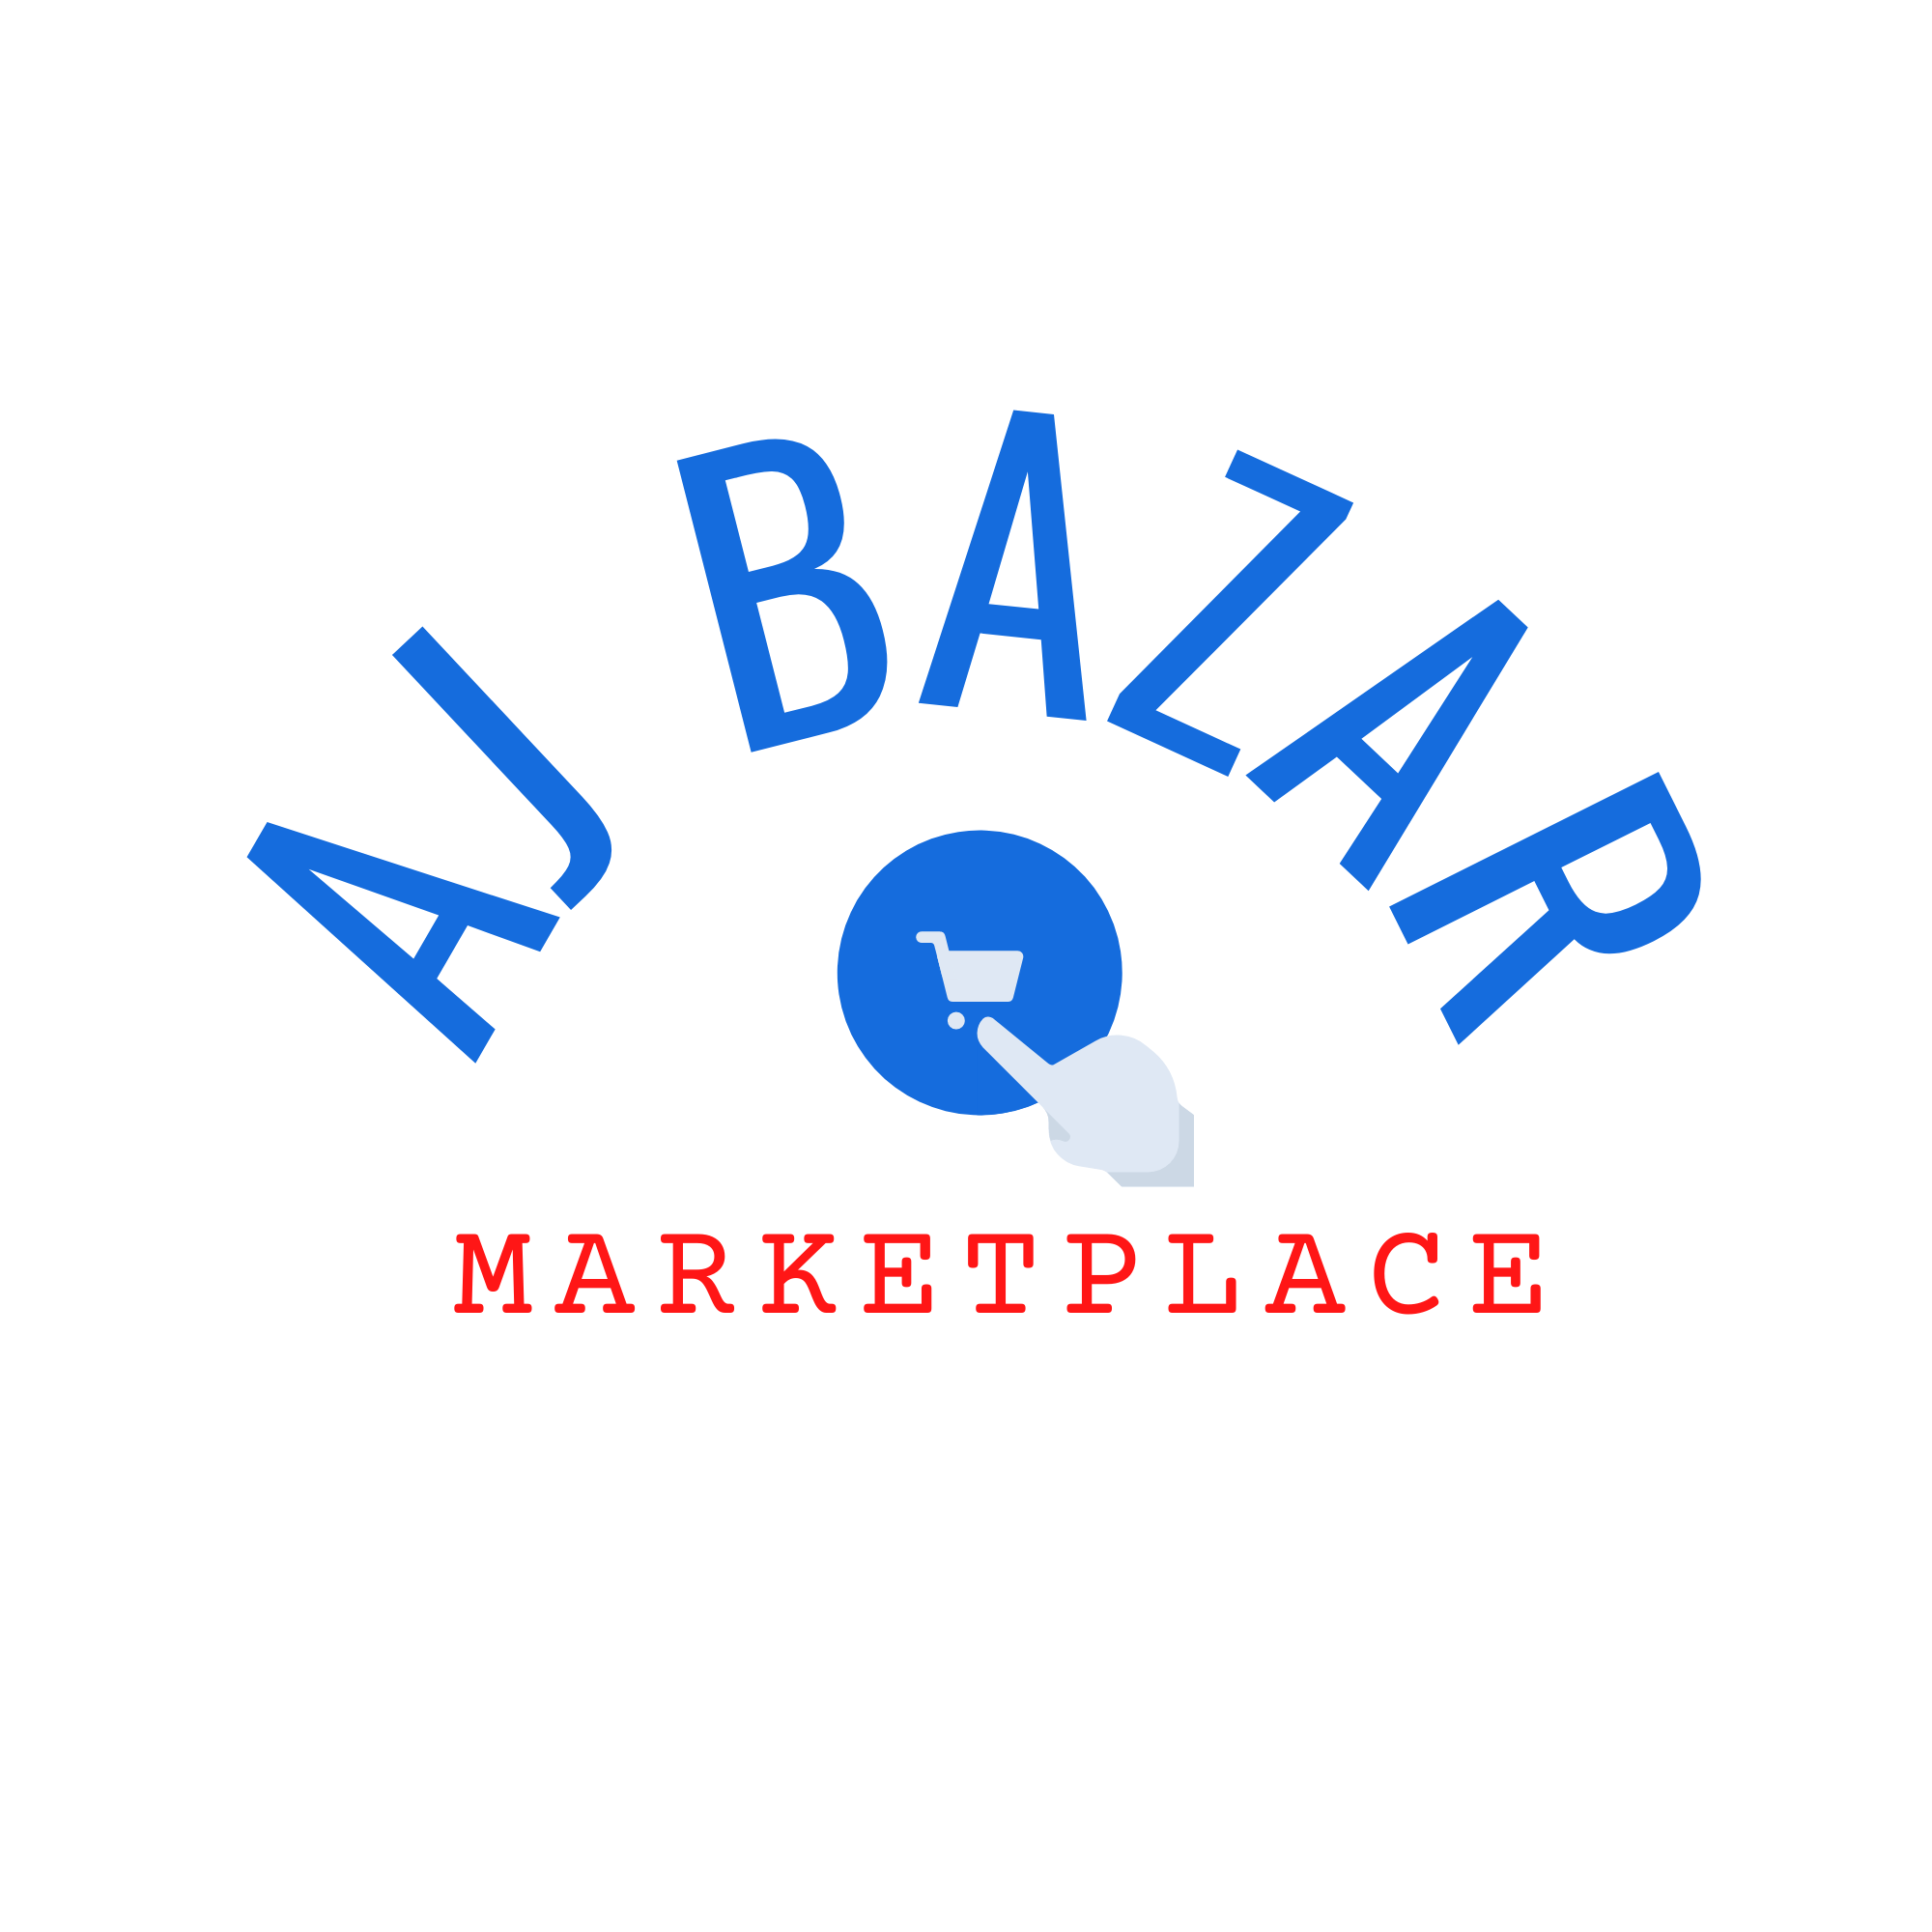 AJ Bazar Marketplace Online Shopping Center